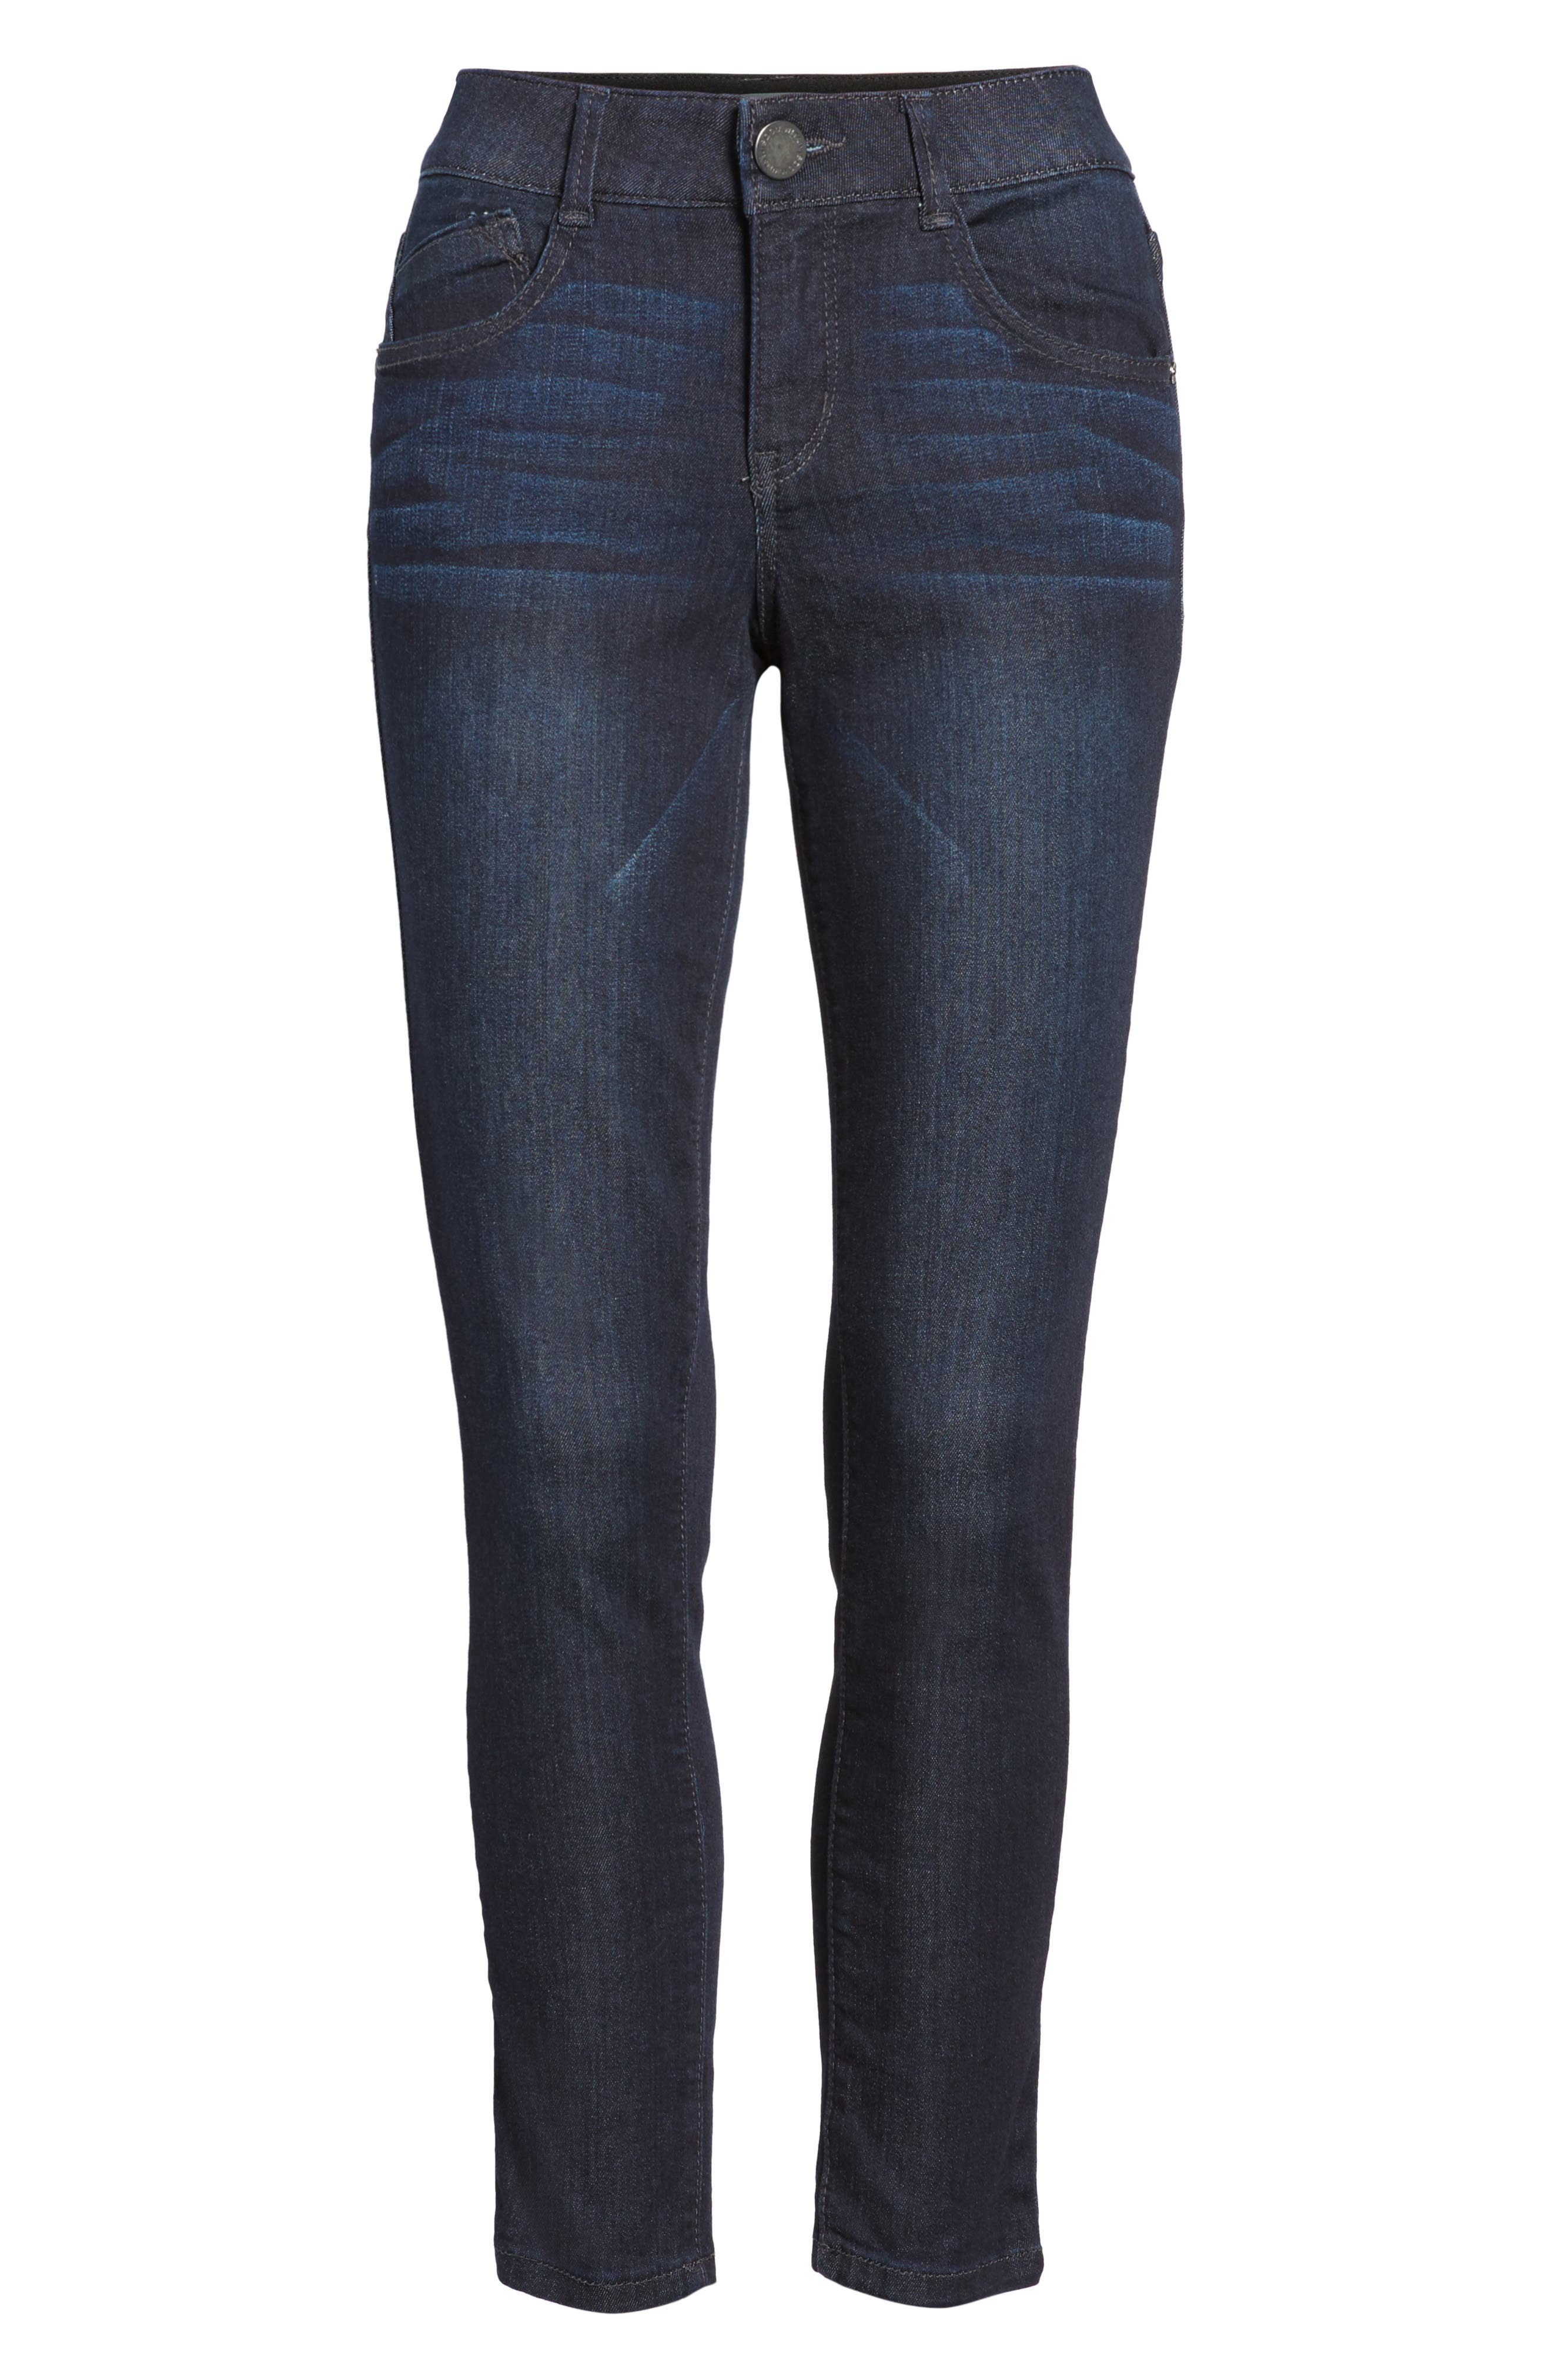 Ab-solution Ankle Skimmer Jeans,                             Alternate thumbnail 7, color,                             In- Indigo